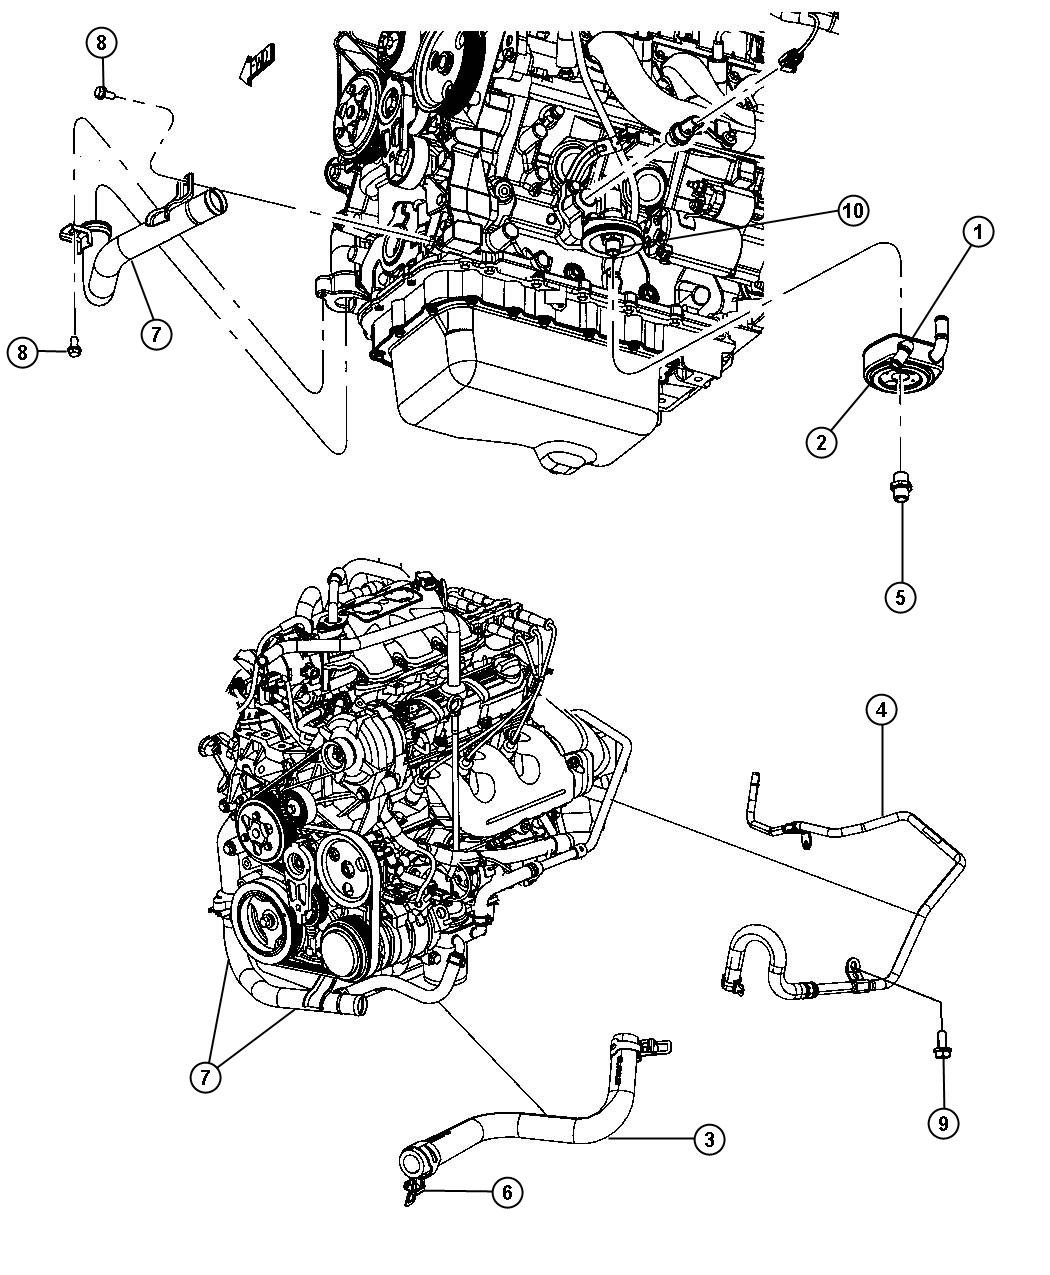 Engine Diagram On A 2010 Chrysler town and Country 3.8lt Ah Dodge Used for Hose and Tube Heater Return Controlengine Of Engine Diagram On A 2010 Chrysler town and Country 3.8lt